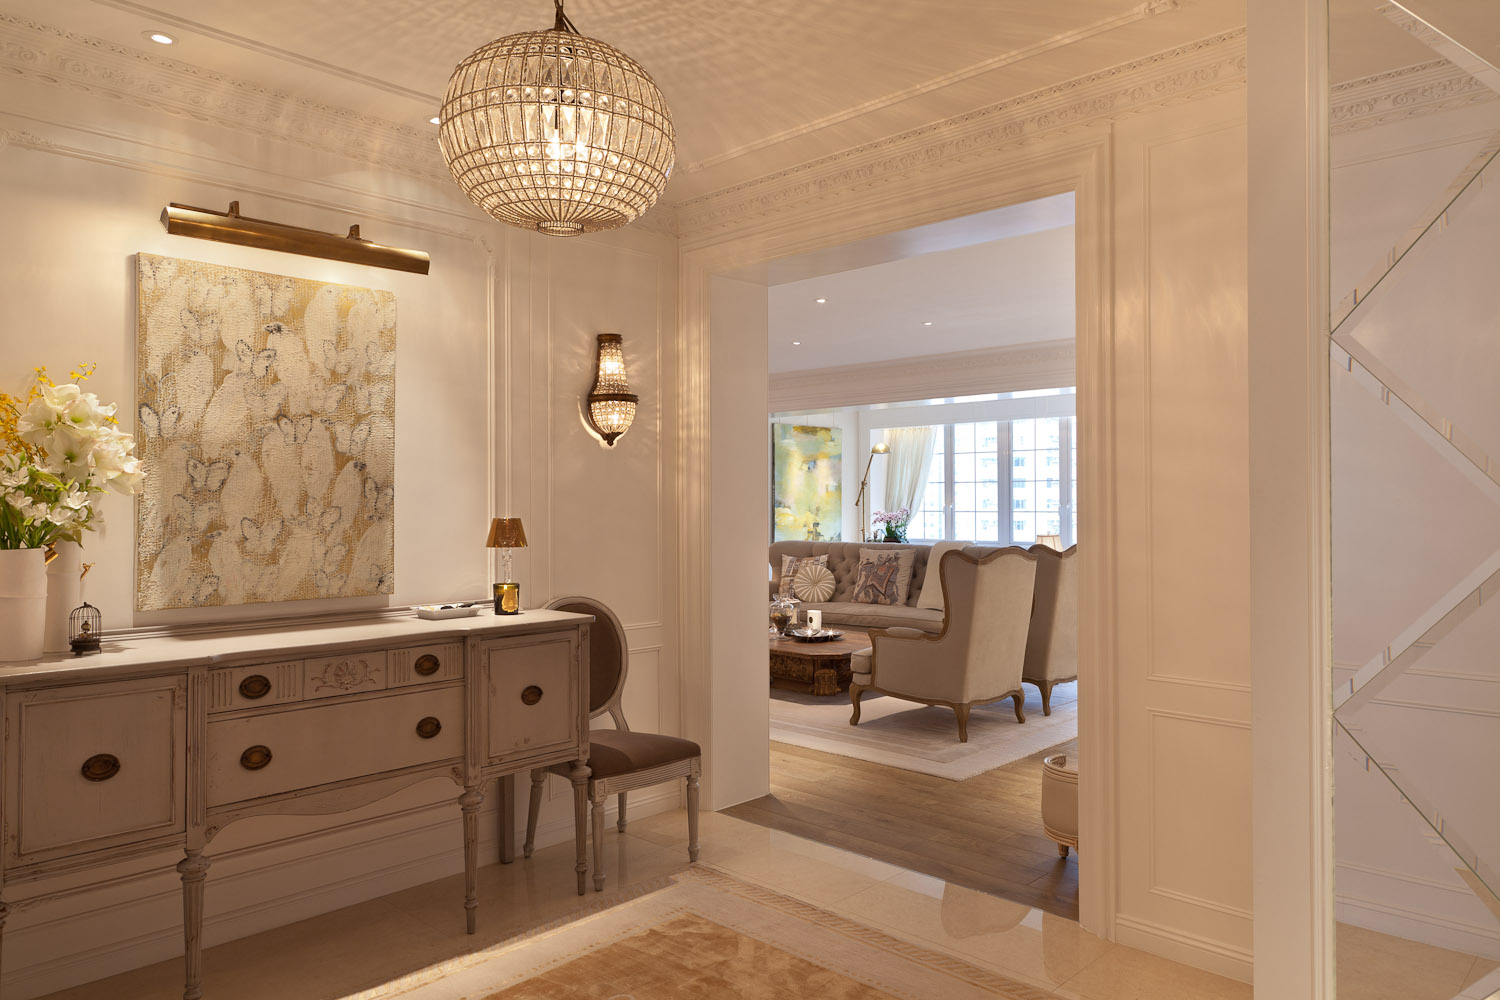 lui design and associates hong kong interior design firm residential classic french white cream antique vintage colonial